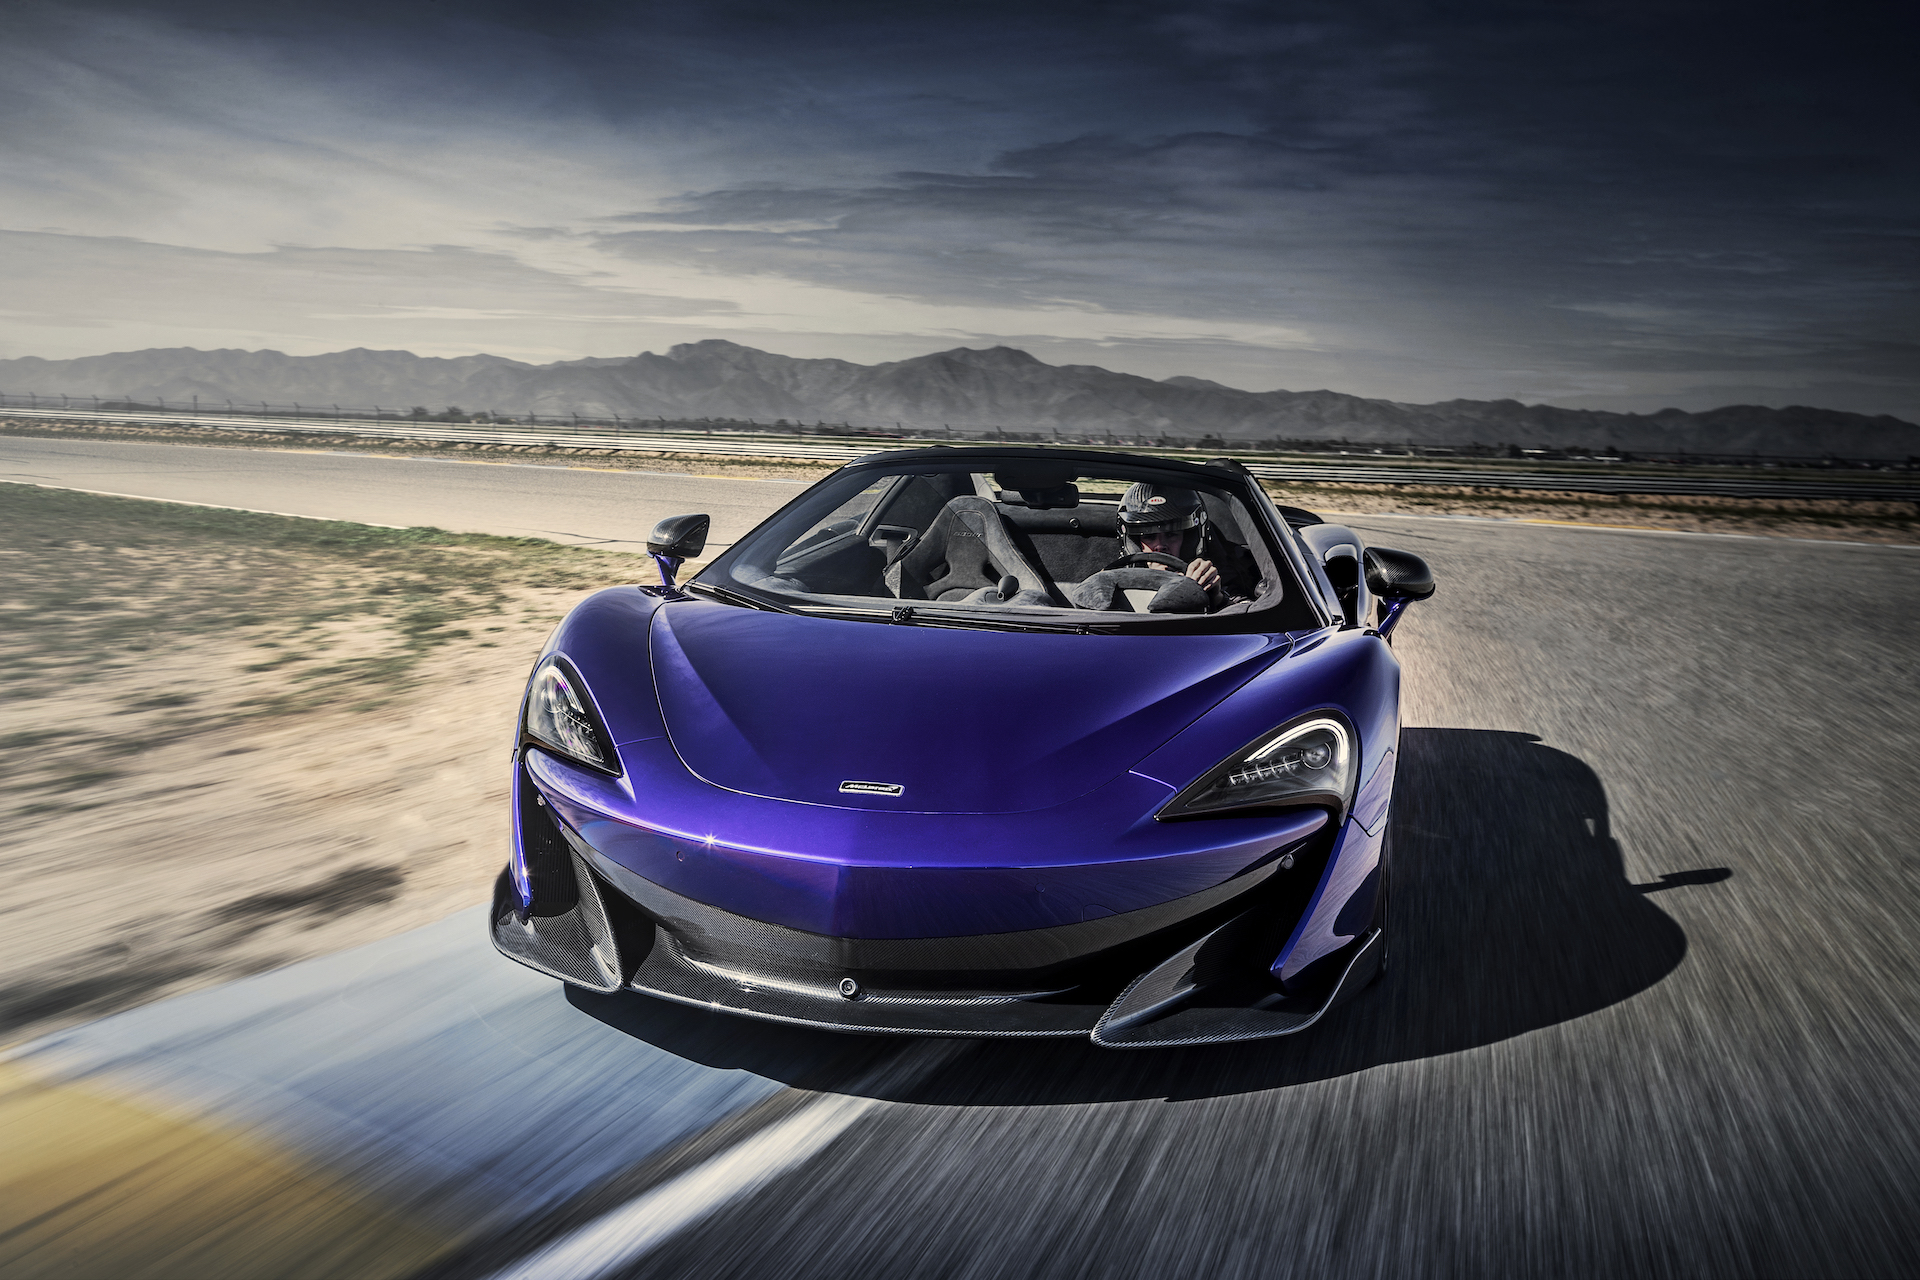 2020 McLaren 600LT Spider (Color: Lantana Purple) Front Wallpaper (1)